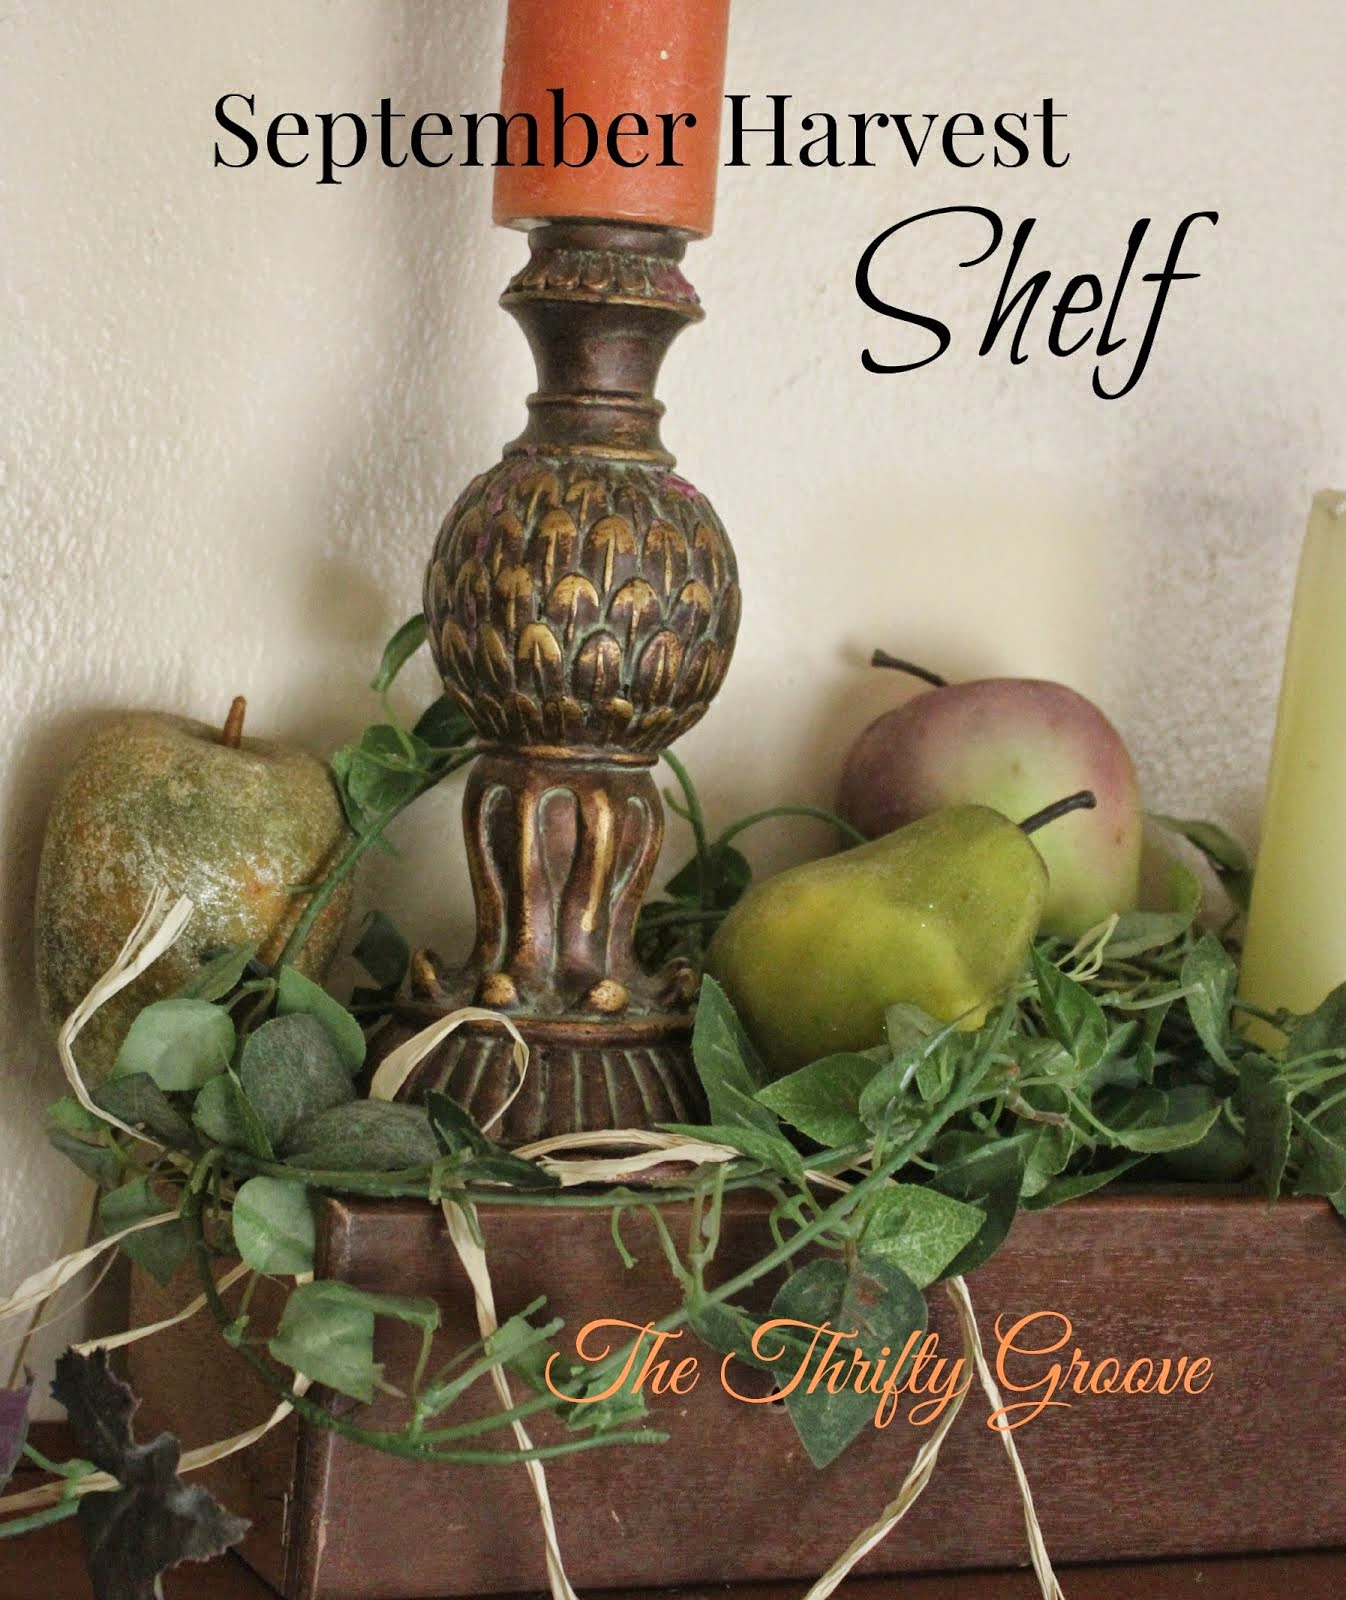 Easing into Fall Decor